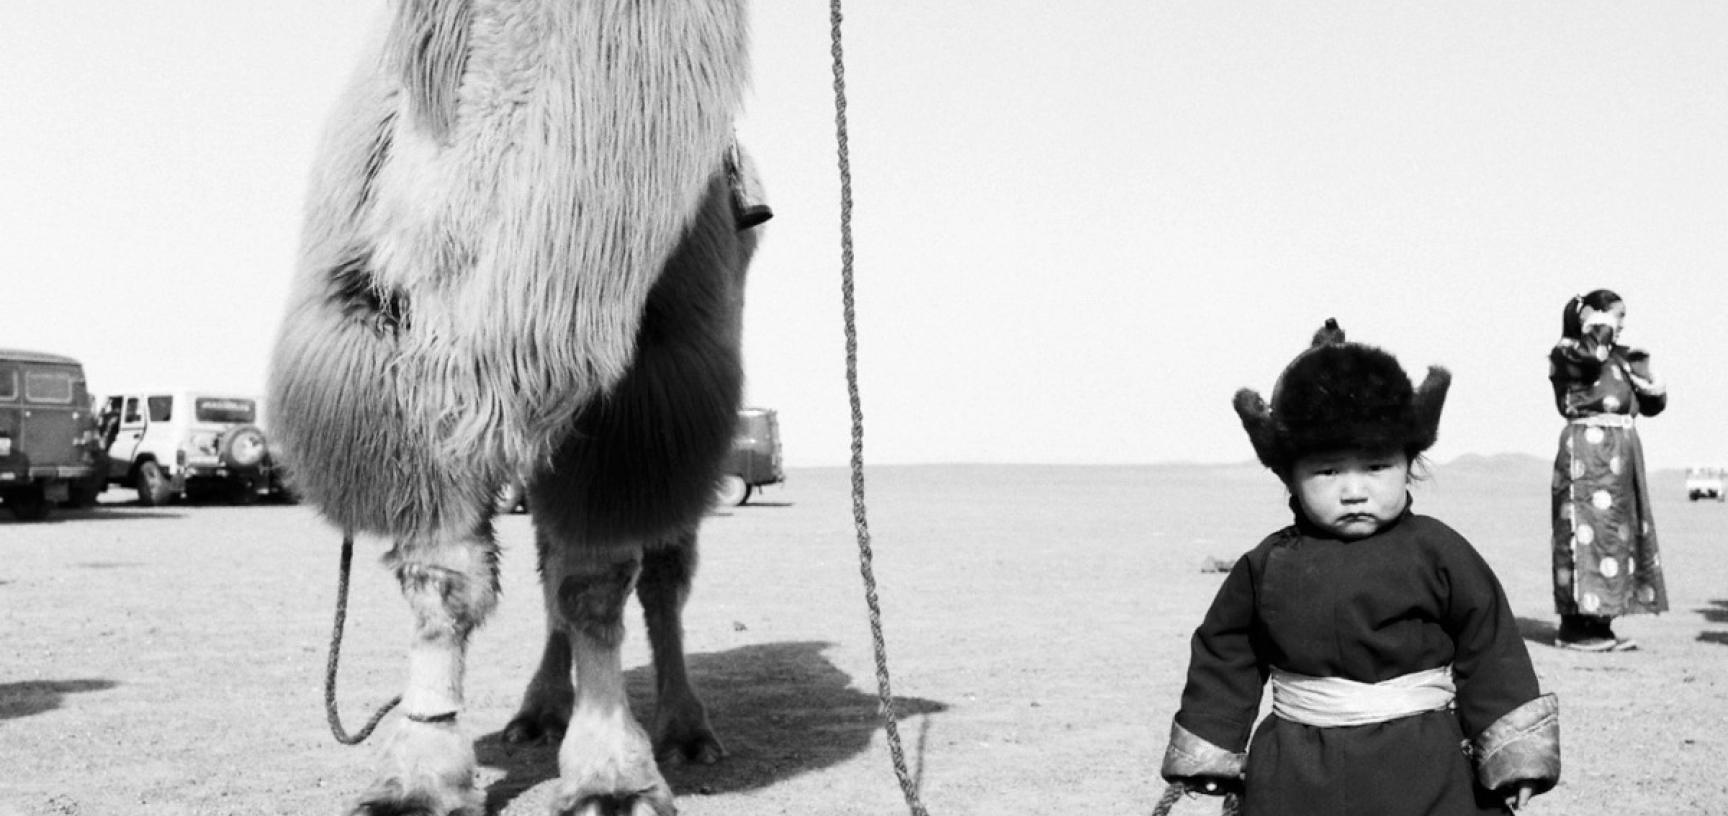 Black and white photograph of a young child holding a camel